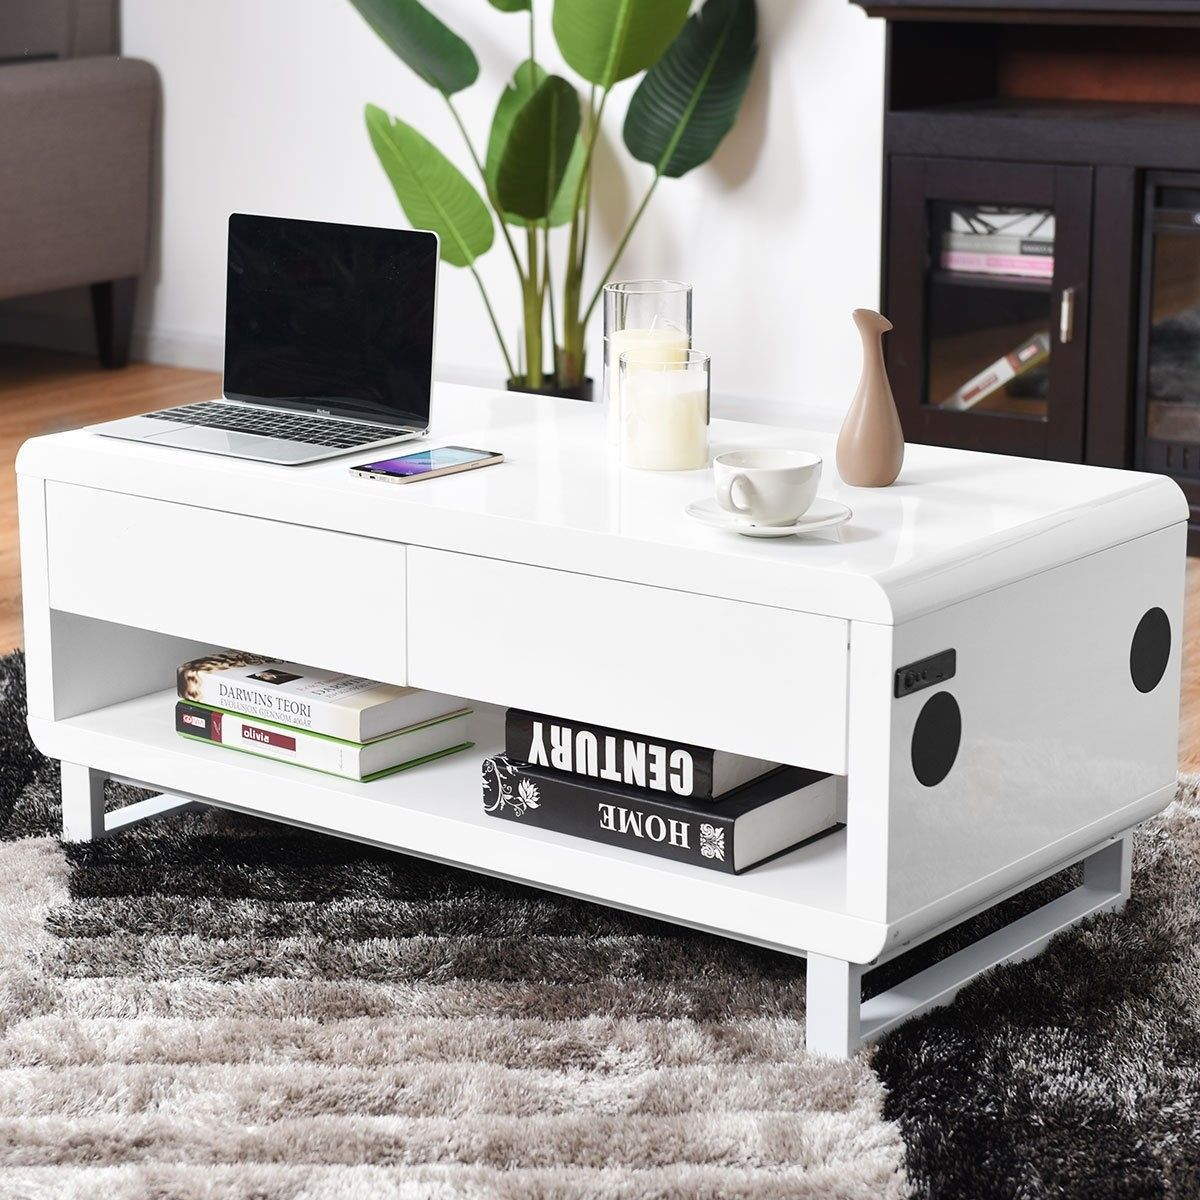 Bluetooth Speakers Drawer Led Light Modern Coffee Table Modern